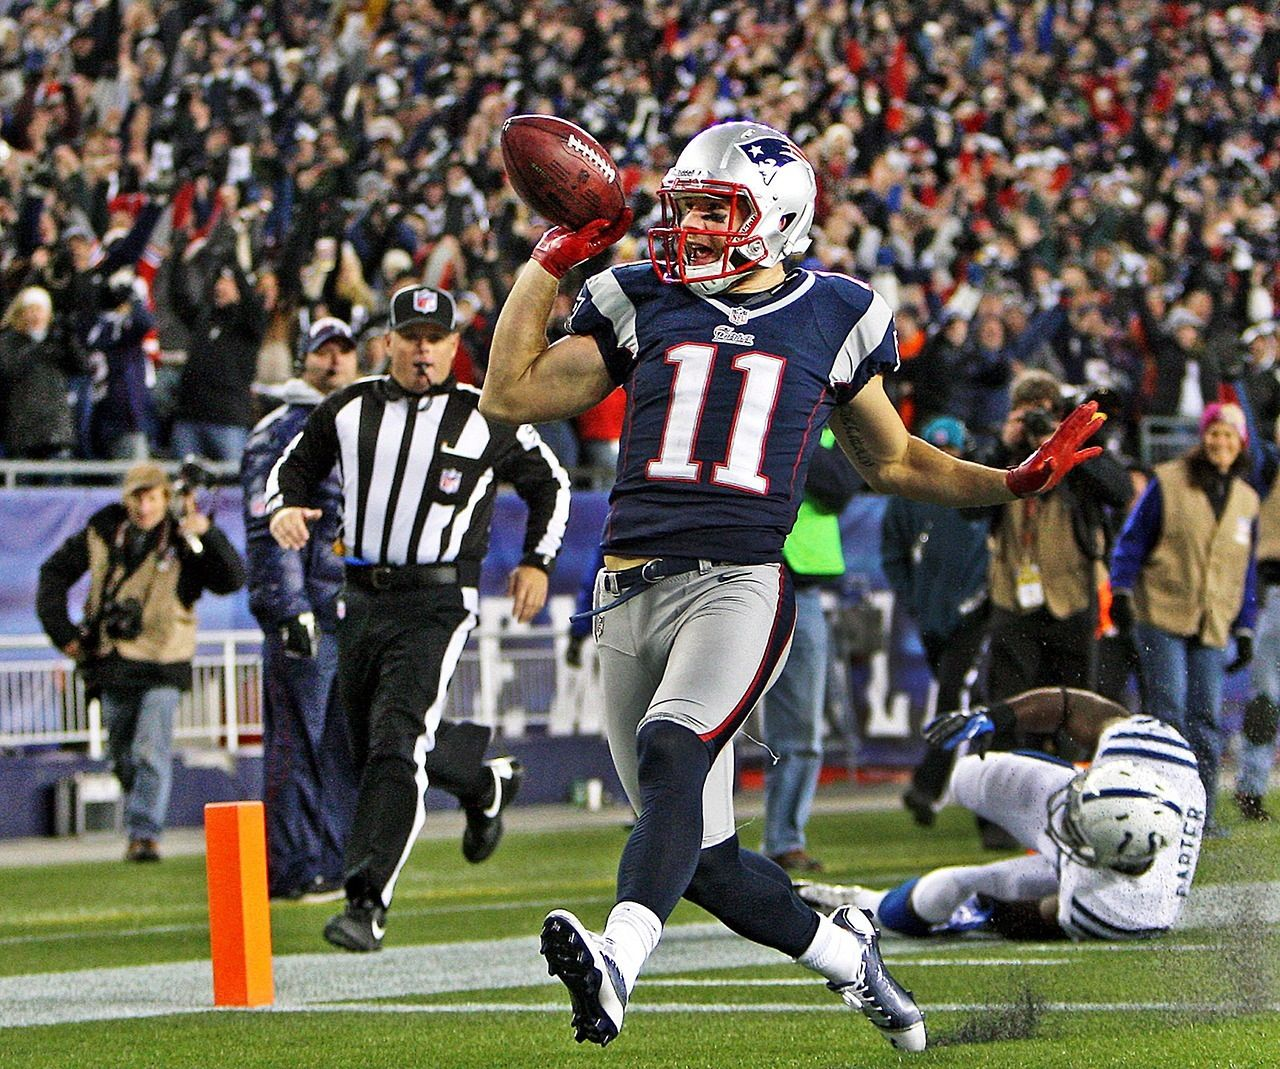 Pin By Celeste Williams On Boston Sports Julian Edelman Patriots Team New England Patriots